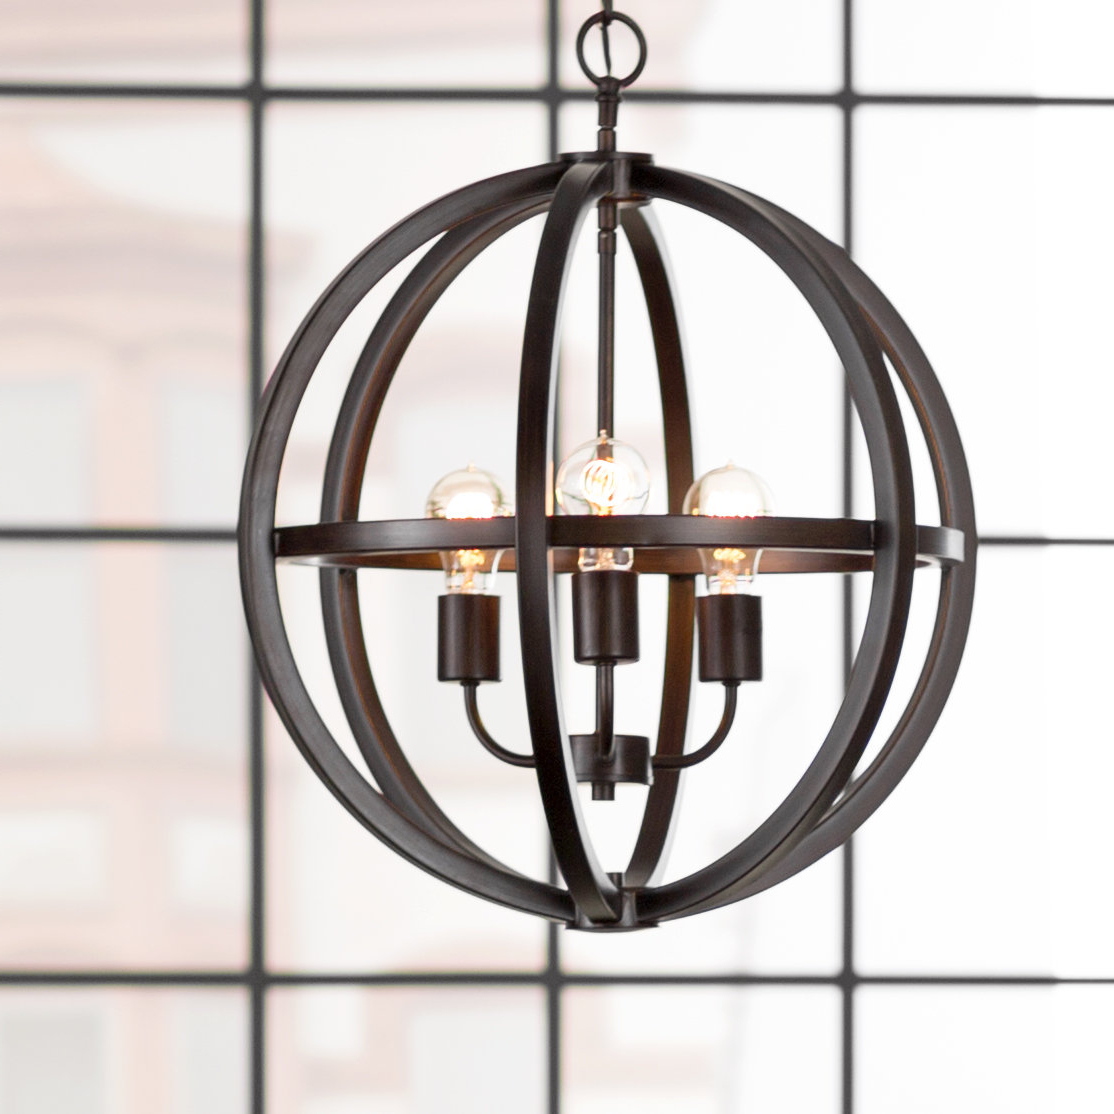 Most Recent Irwin 3 Light Unique / Statement Chandelier Within Kaycee 4 Light Geometric Chandeliers (Gallery 18 of 20)